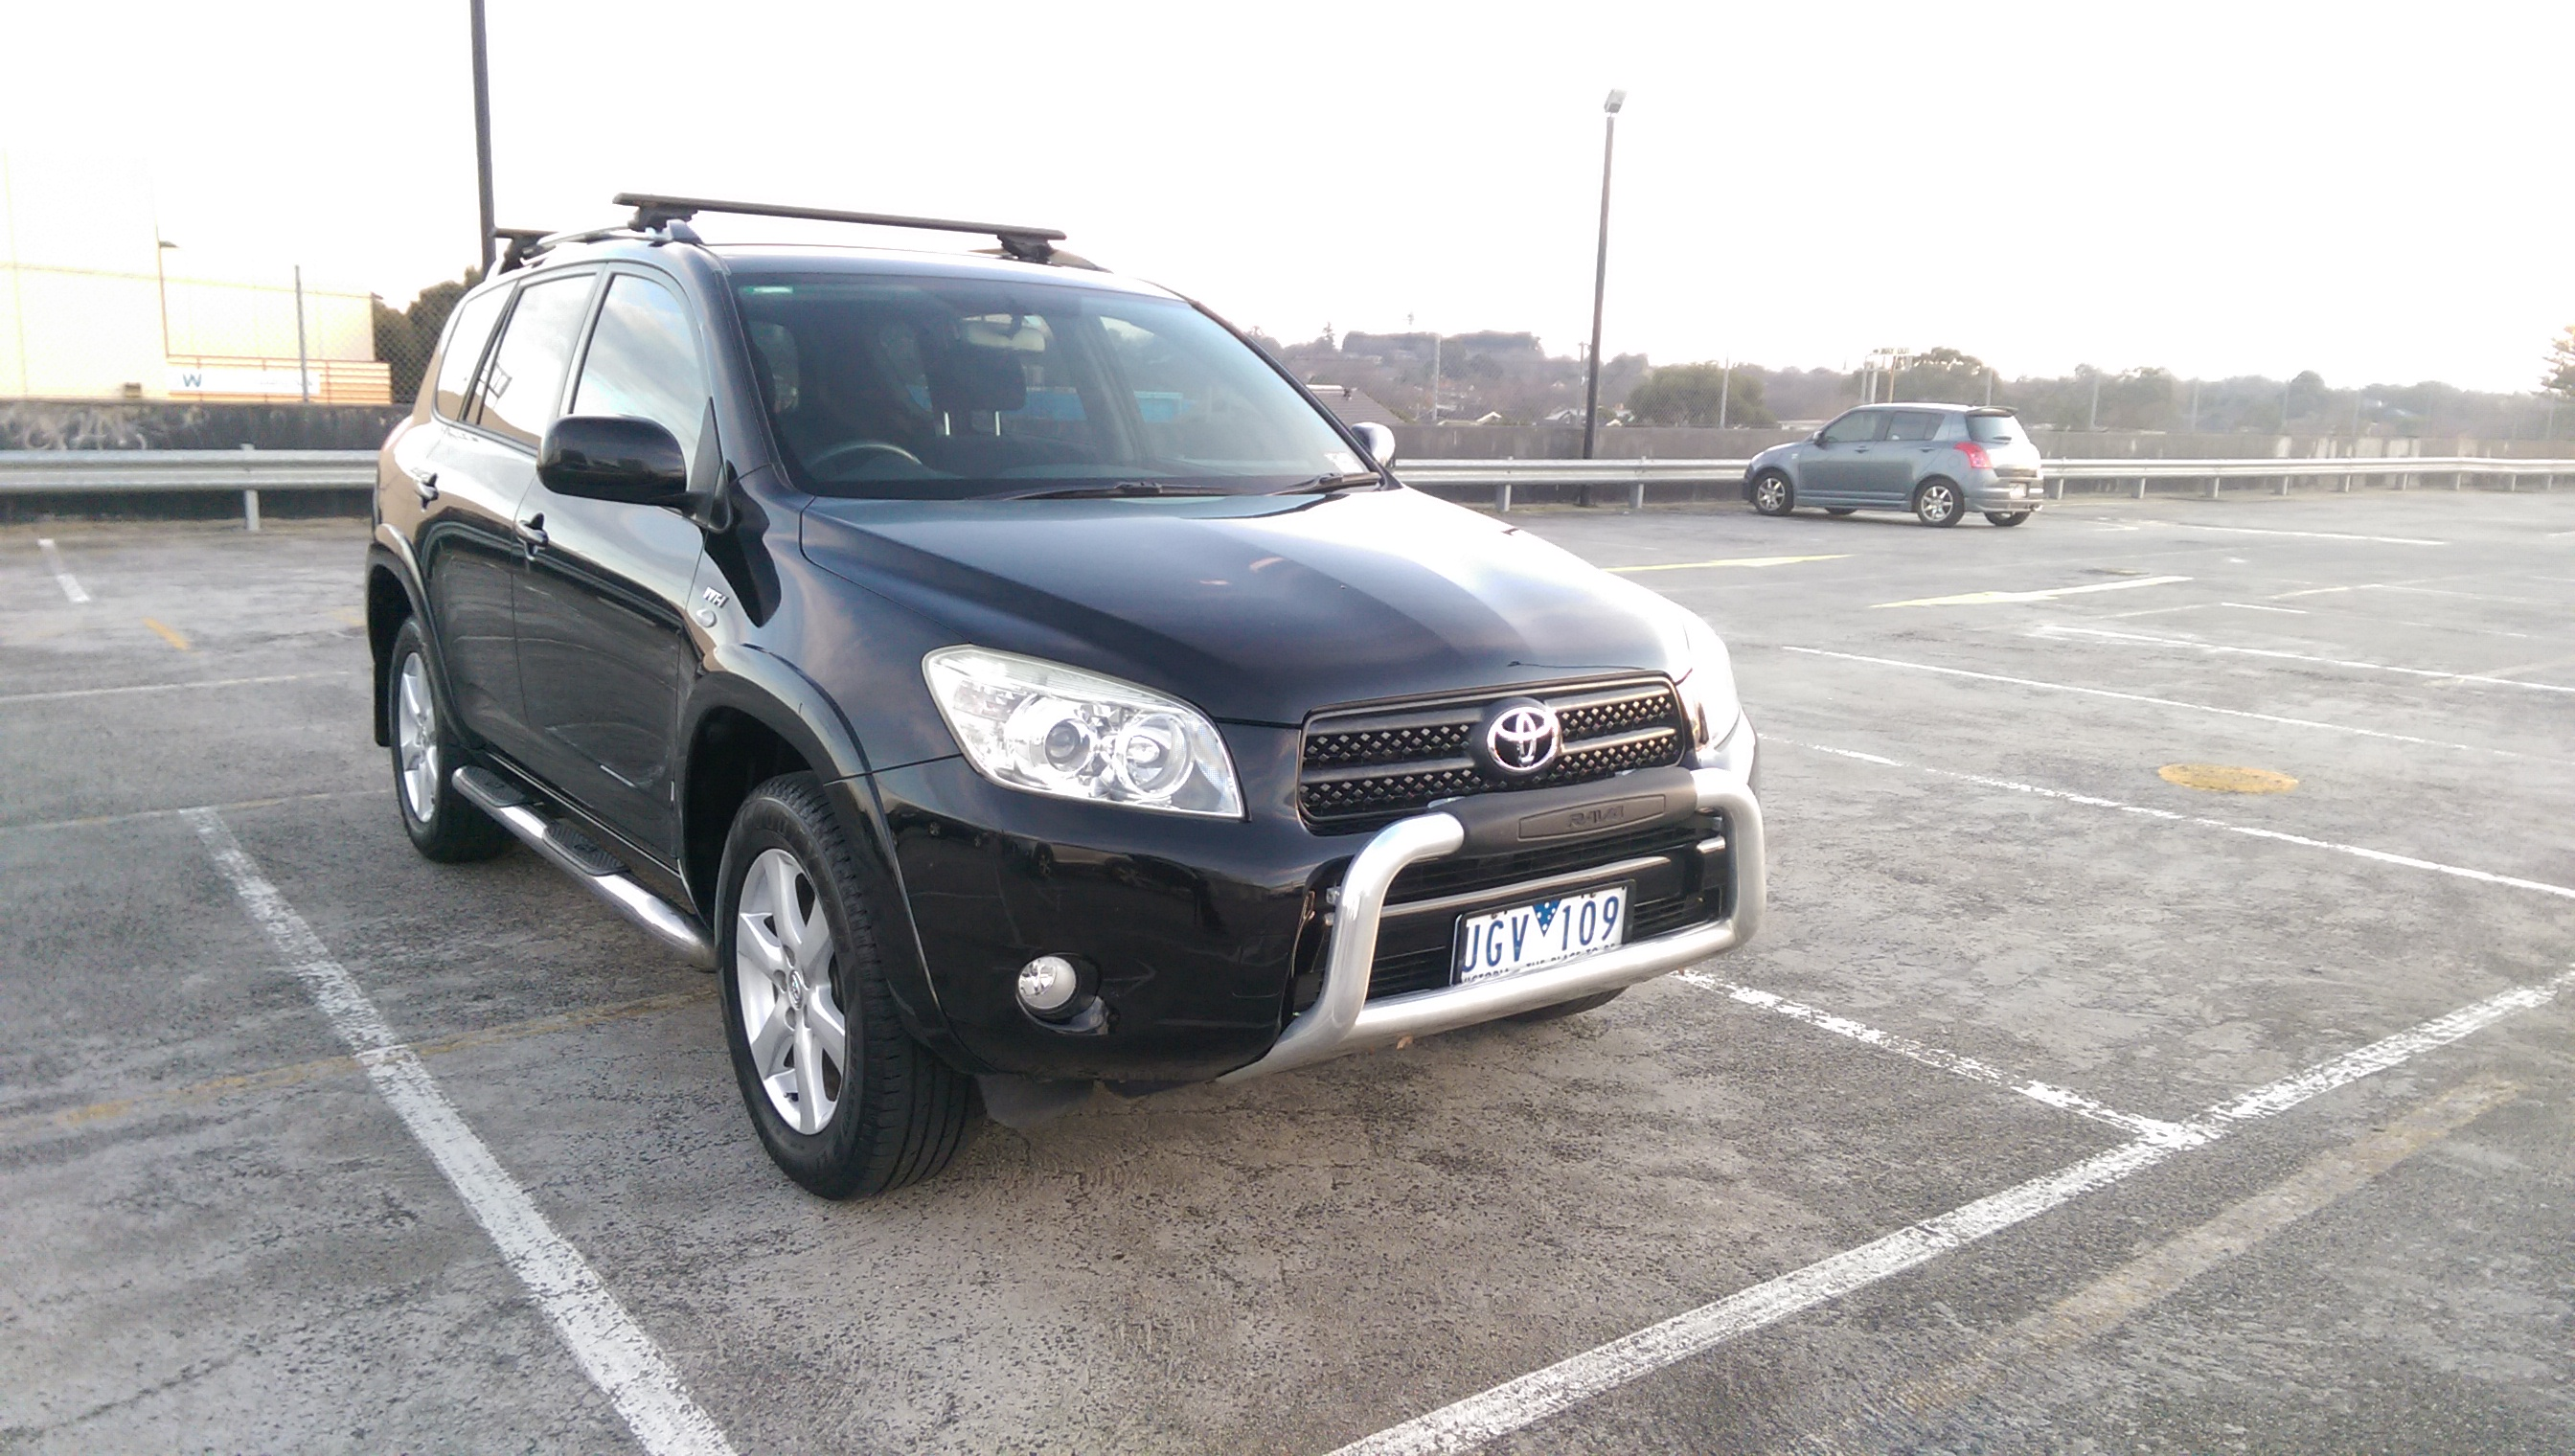 2007 toyota rav4 cruiser 4x4 aca33r car sales vic. Black Bedroom Furniture Sets. Home Design Ideas